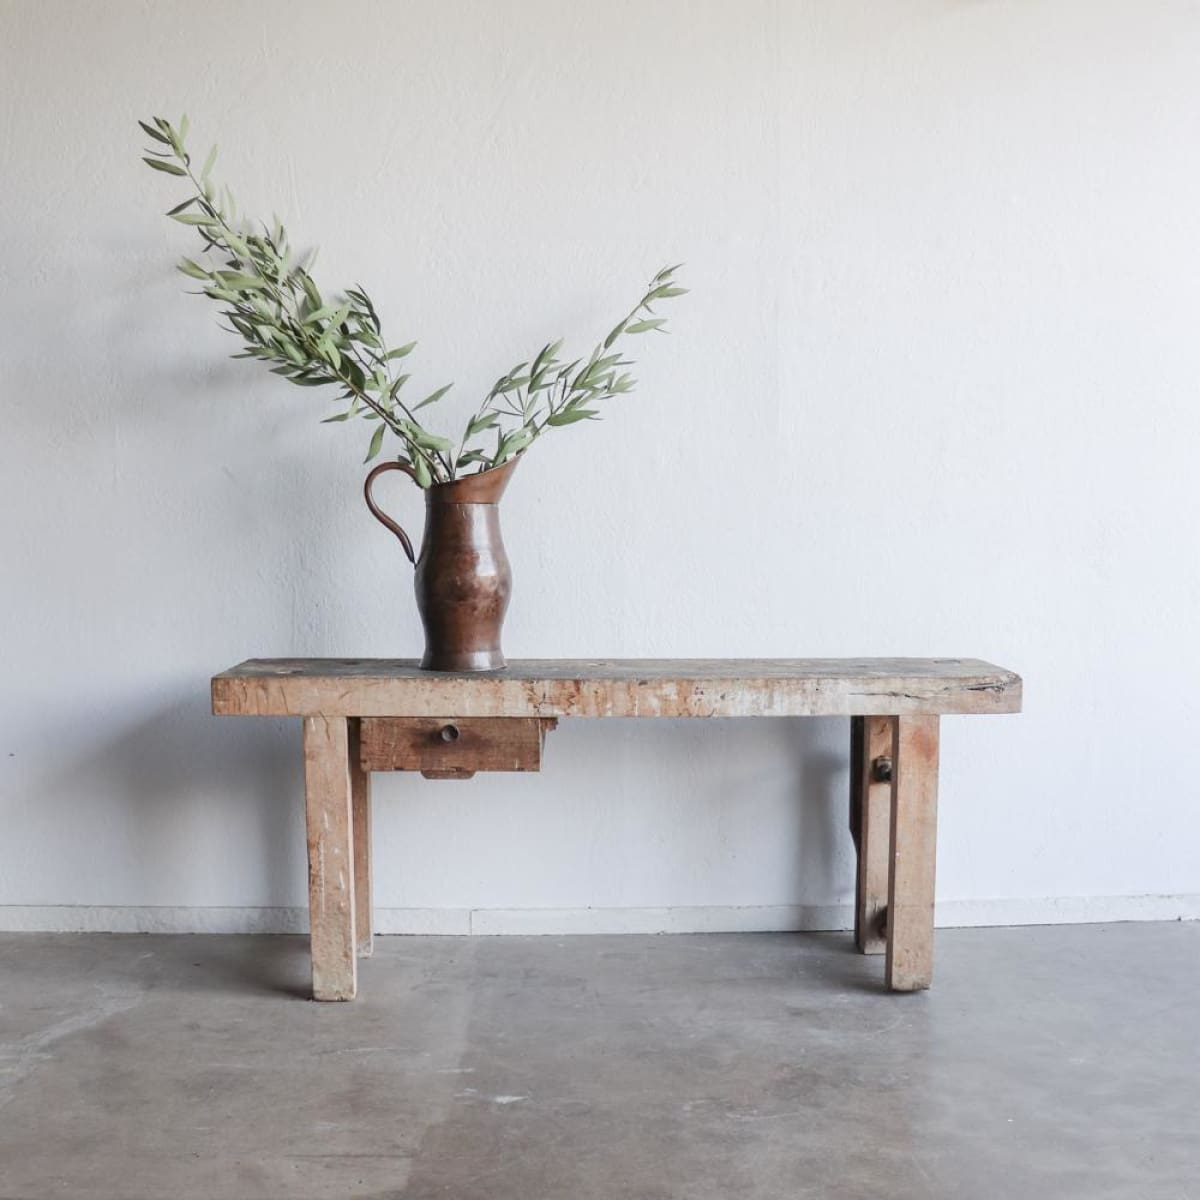 Antique Furniture Supplies Mail: Vintage Rustic Workbench Console